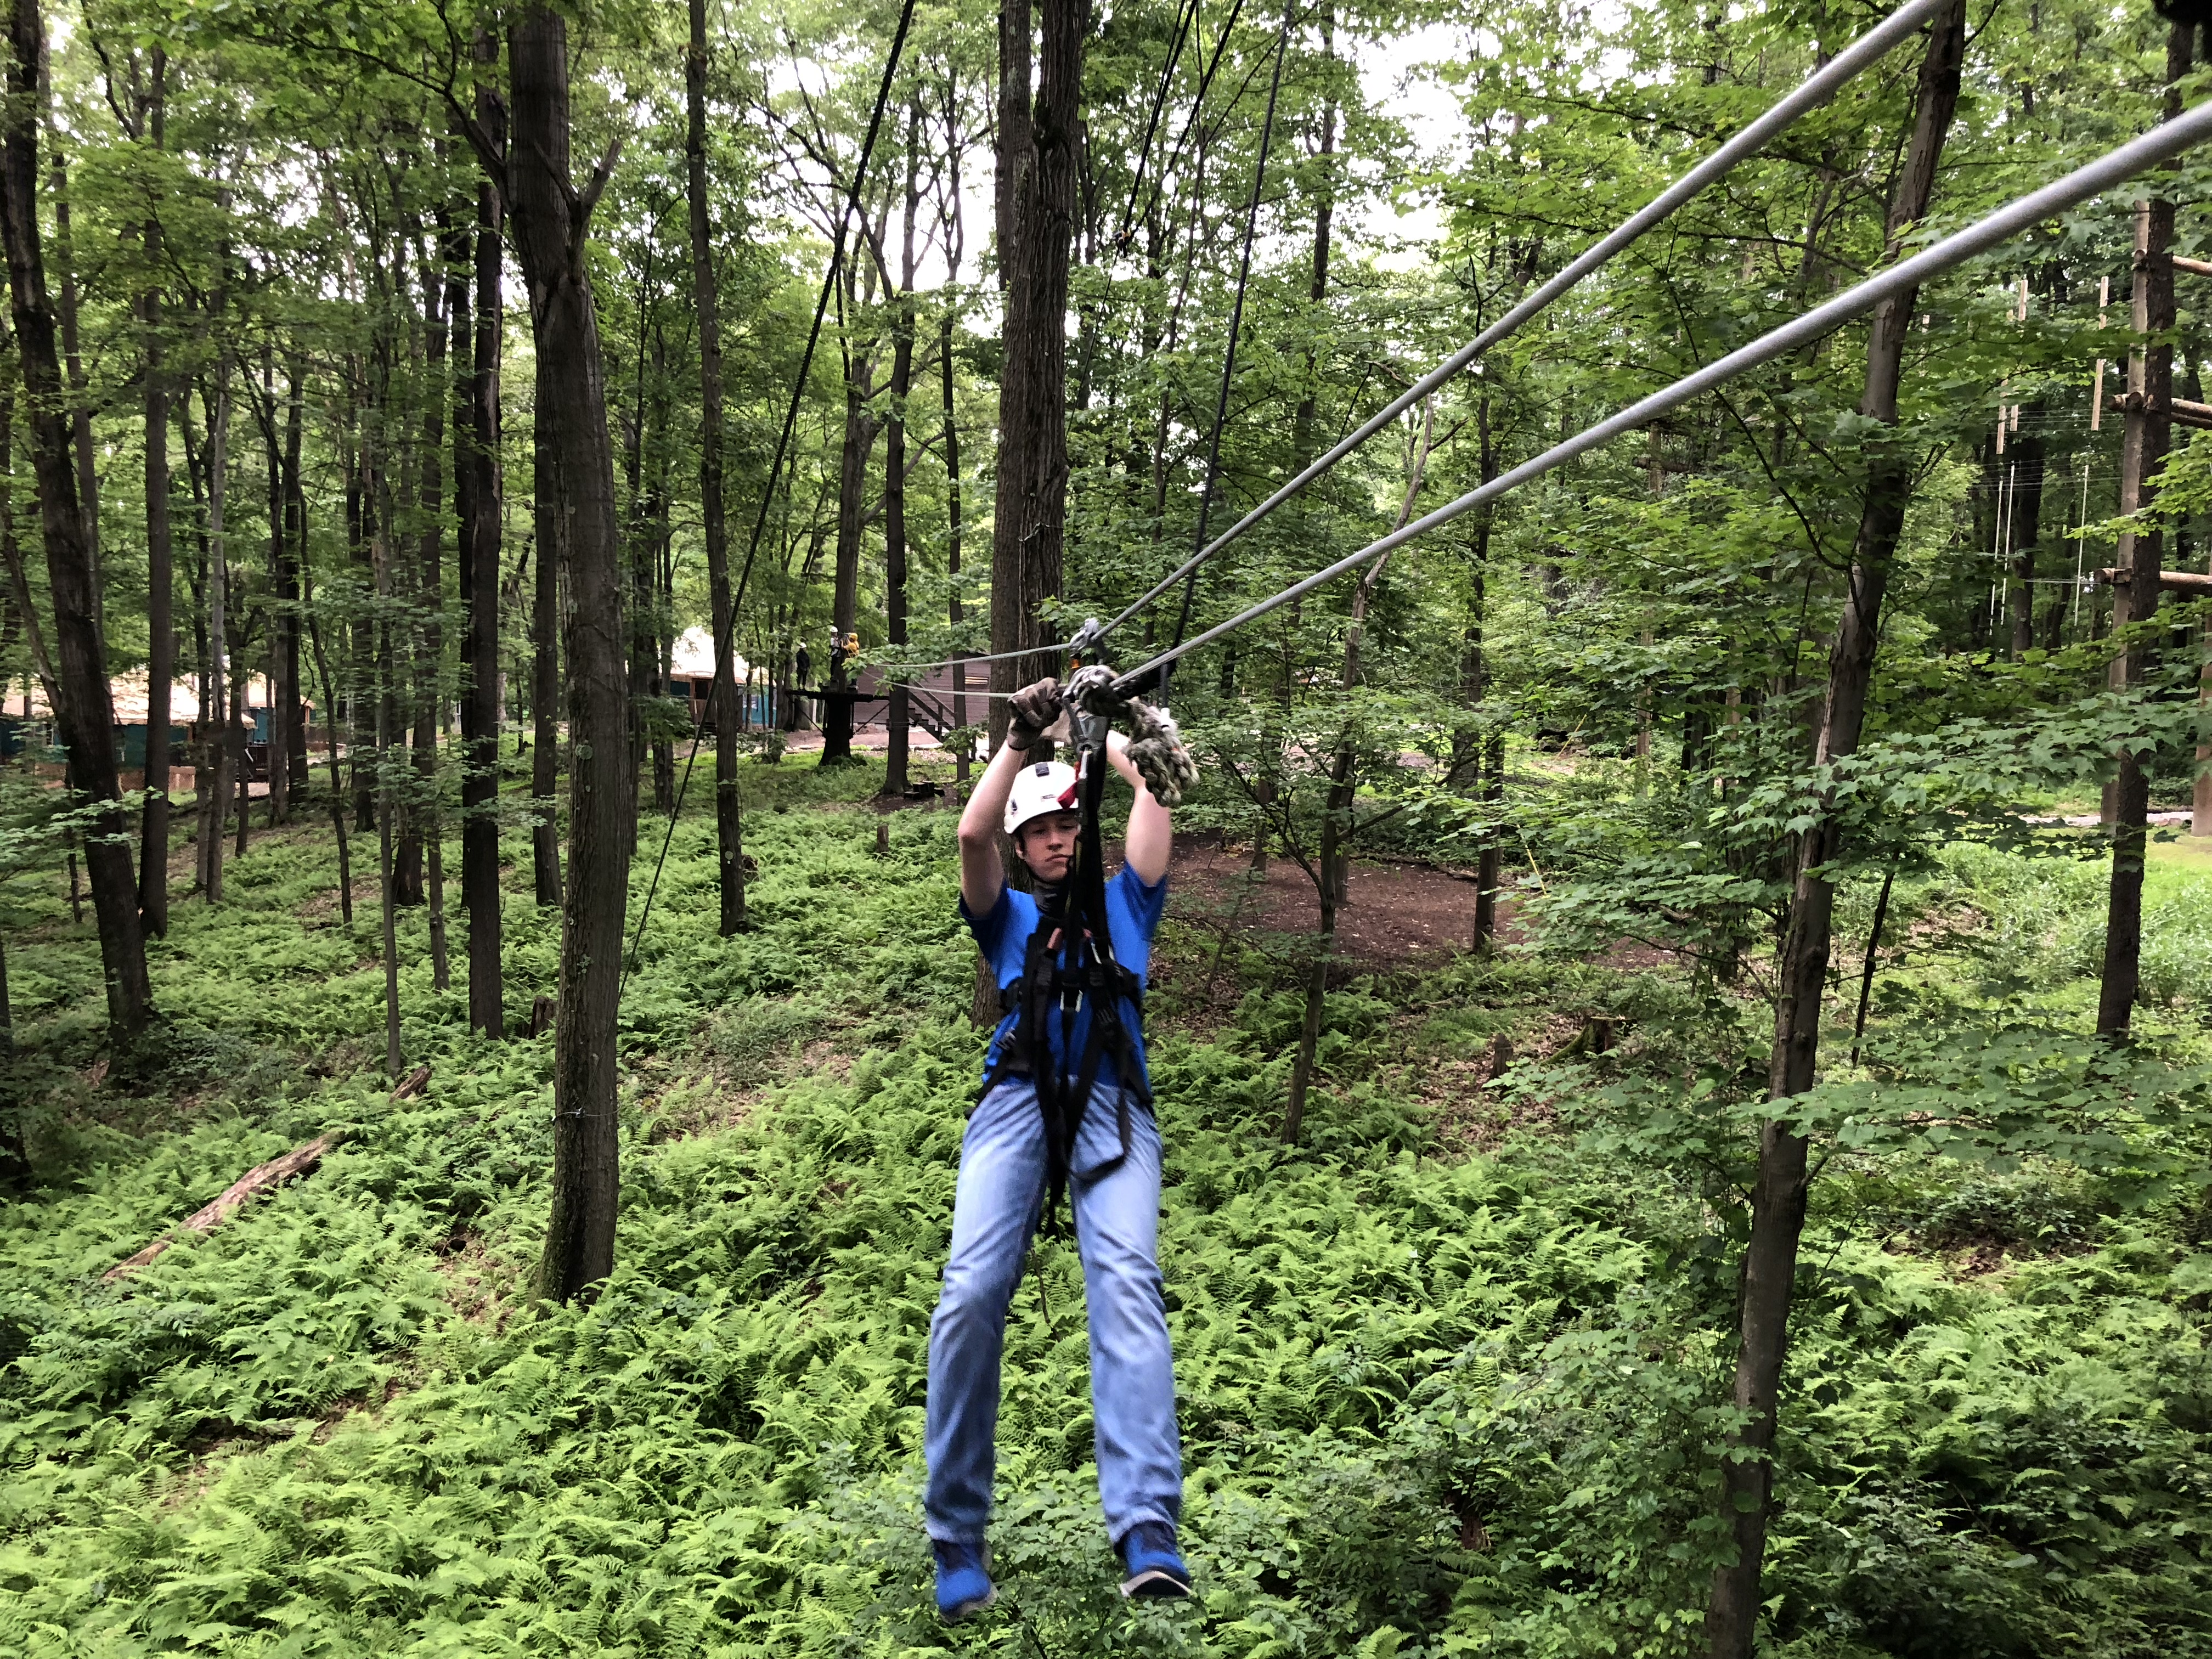 A student completing the zip line tour